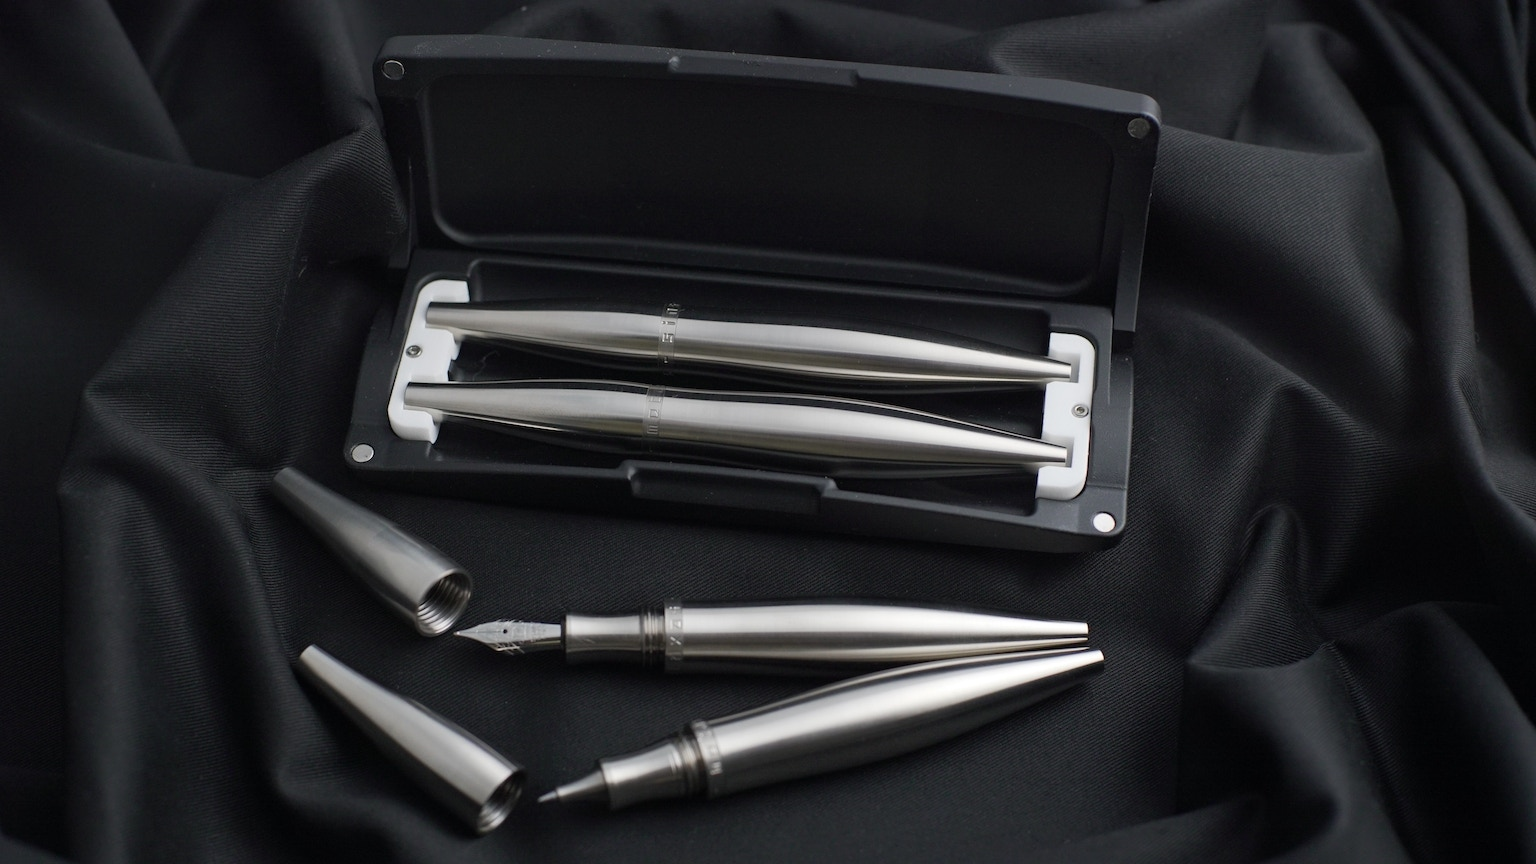 The ultimate gift - Two indestructible TITANIUM ,curvaceous, ink fountain & rollerball/fineliner pens in a solid, cnc-machined capsule.